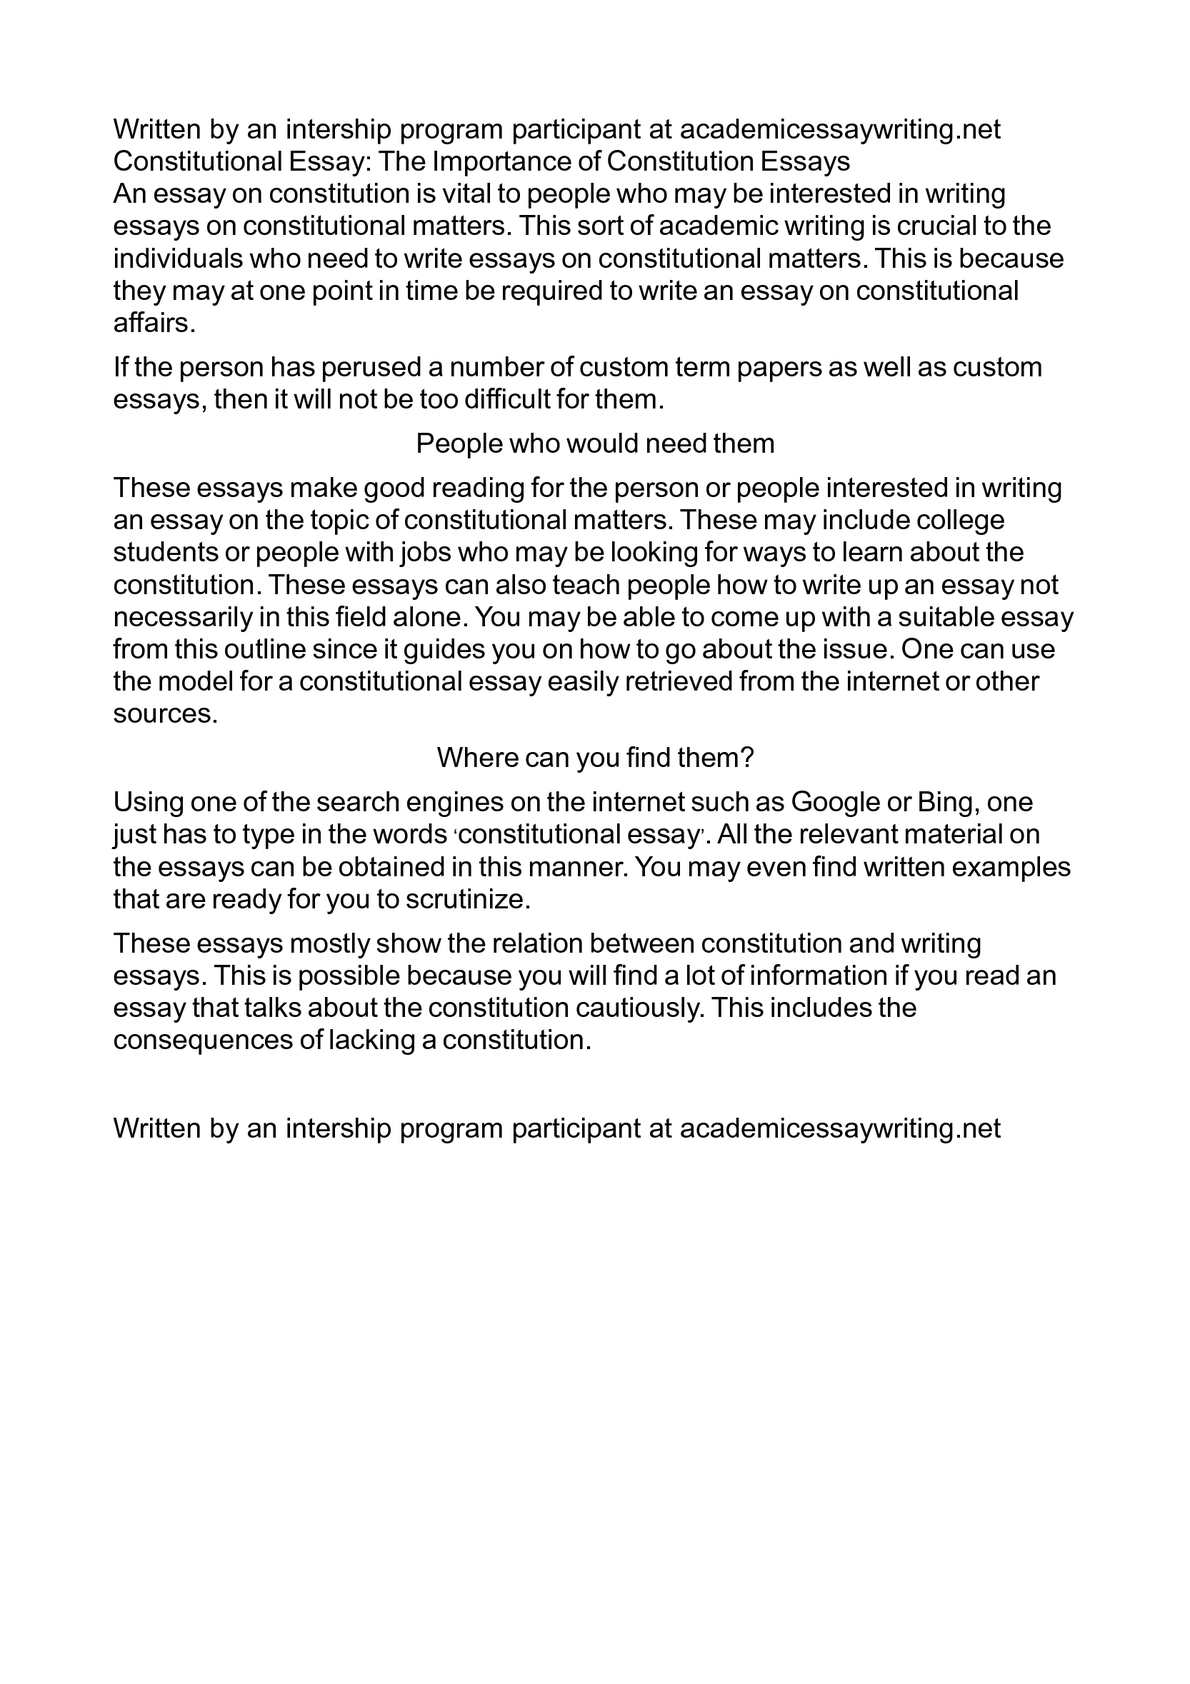 an essay on internet okl mindsprout co an essay on internet